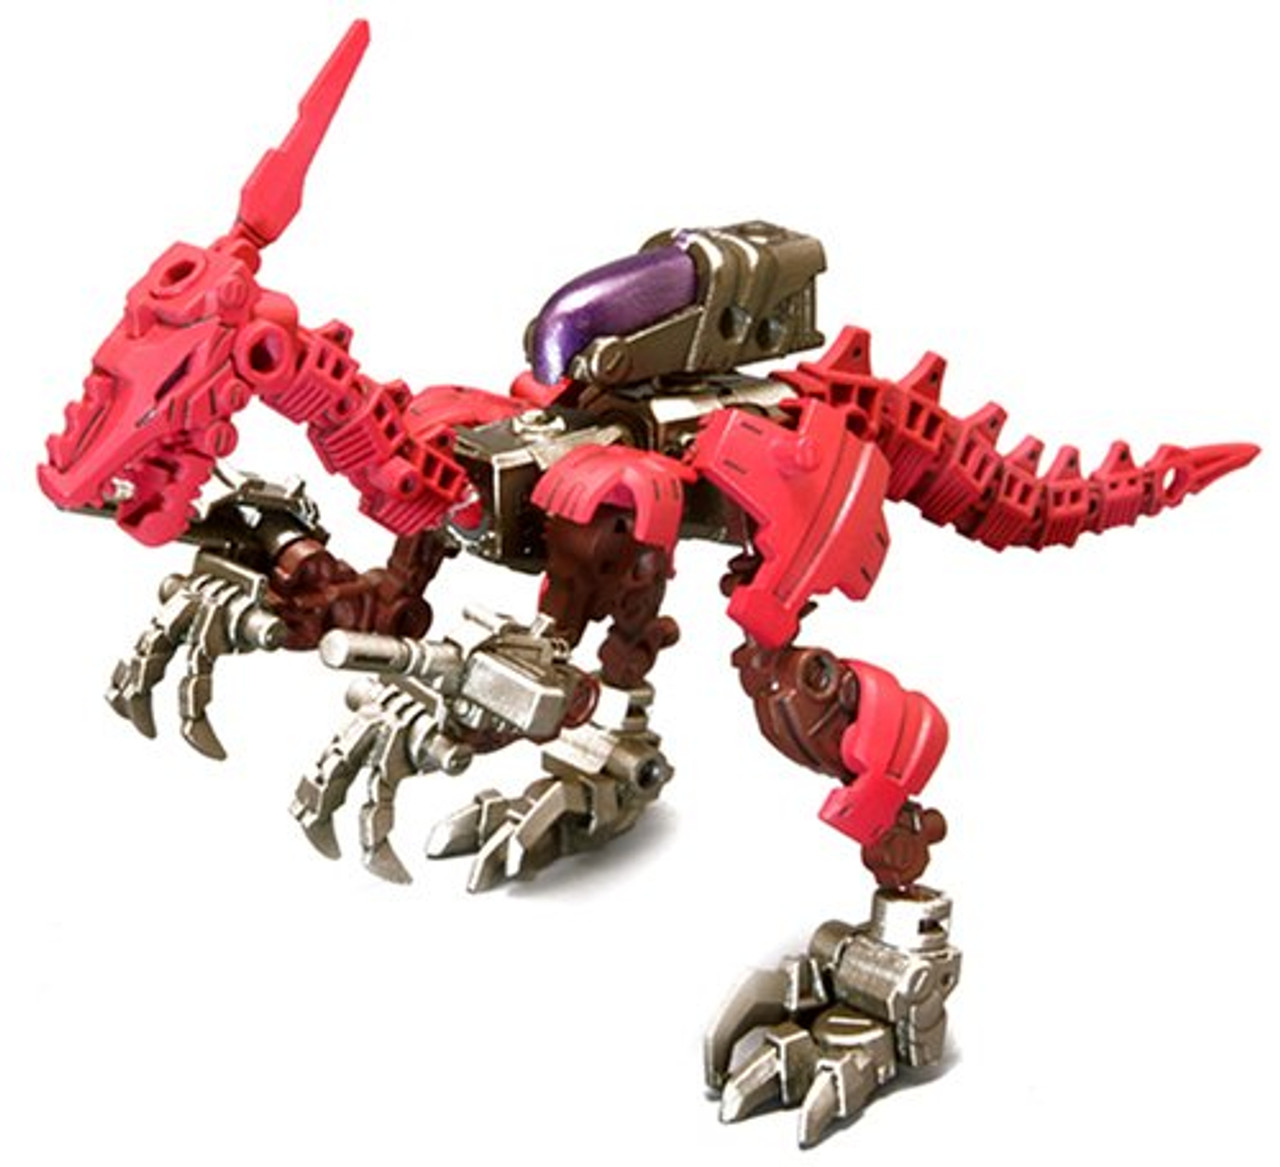 Zoids NeoBlox Raptiger Model Kit NBZ-04